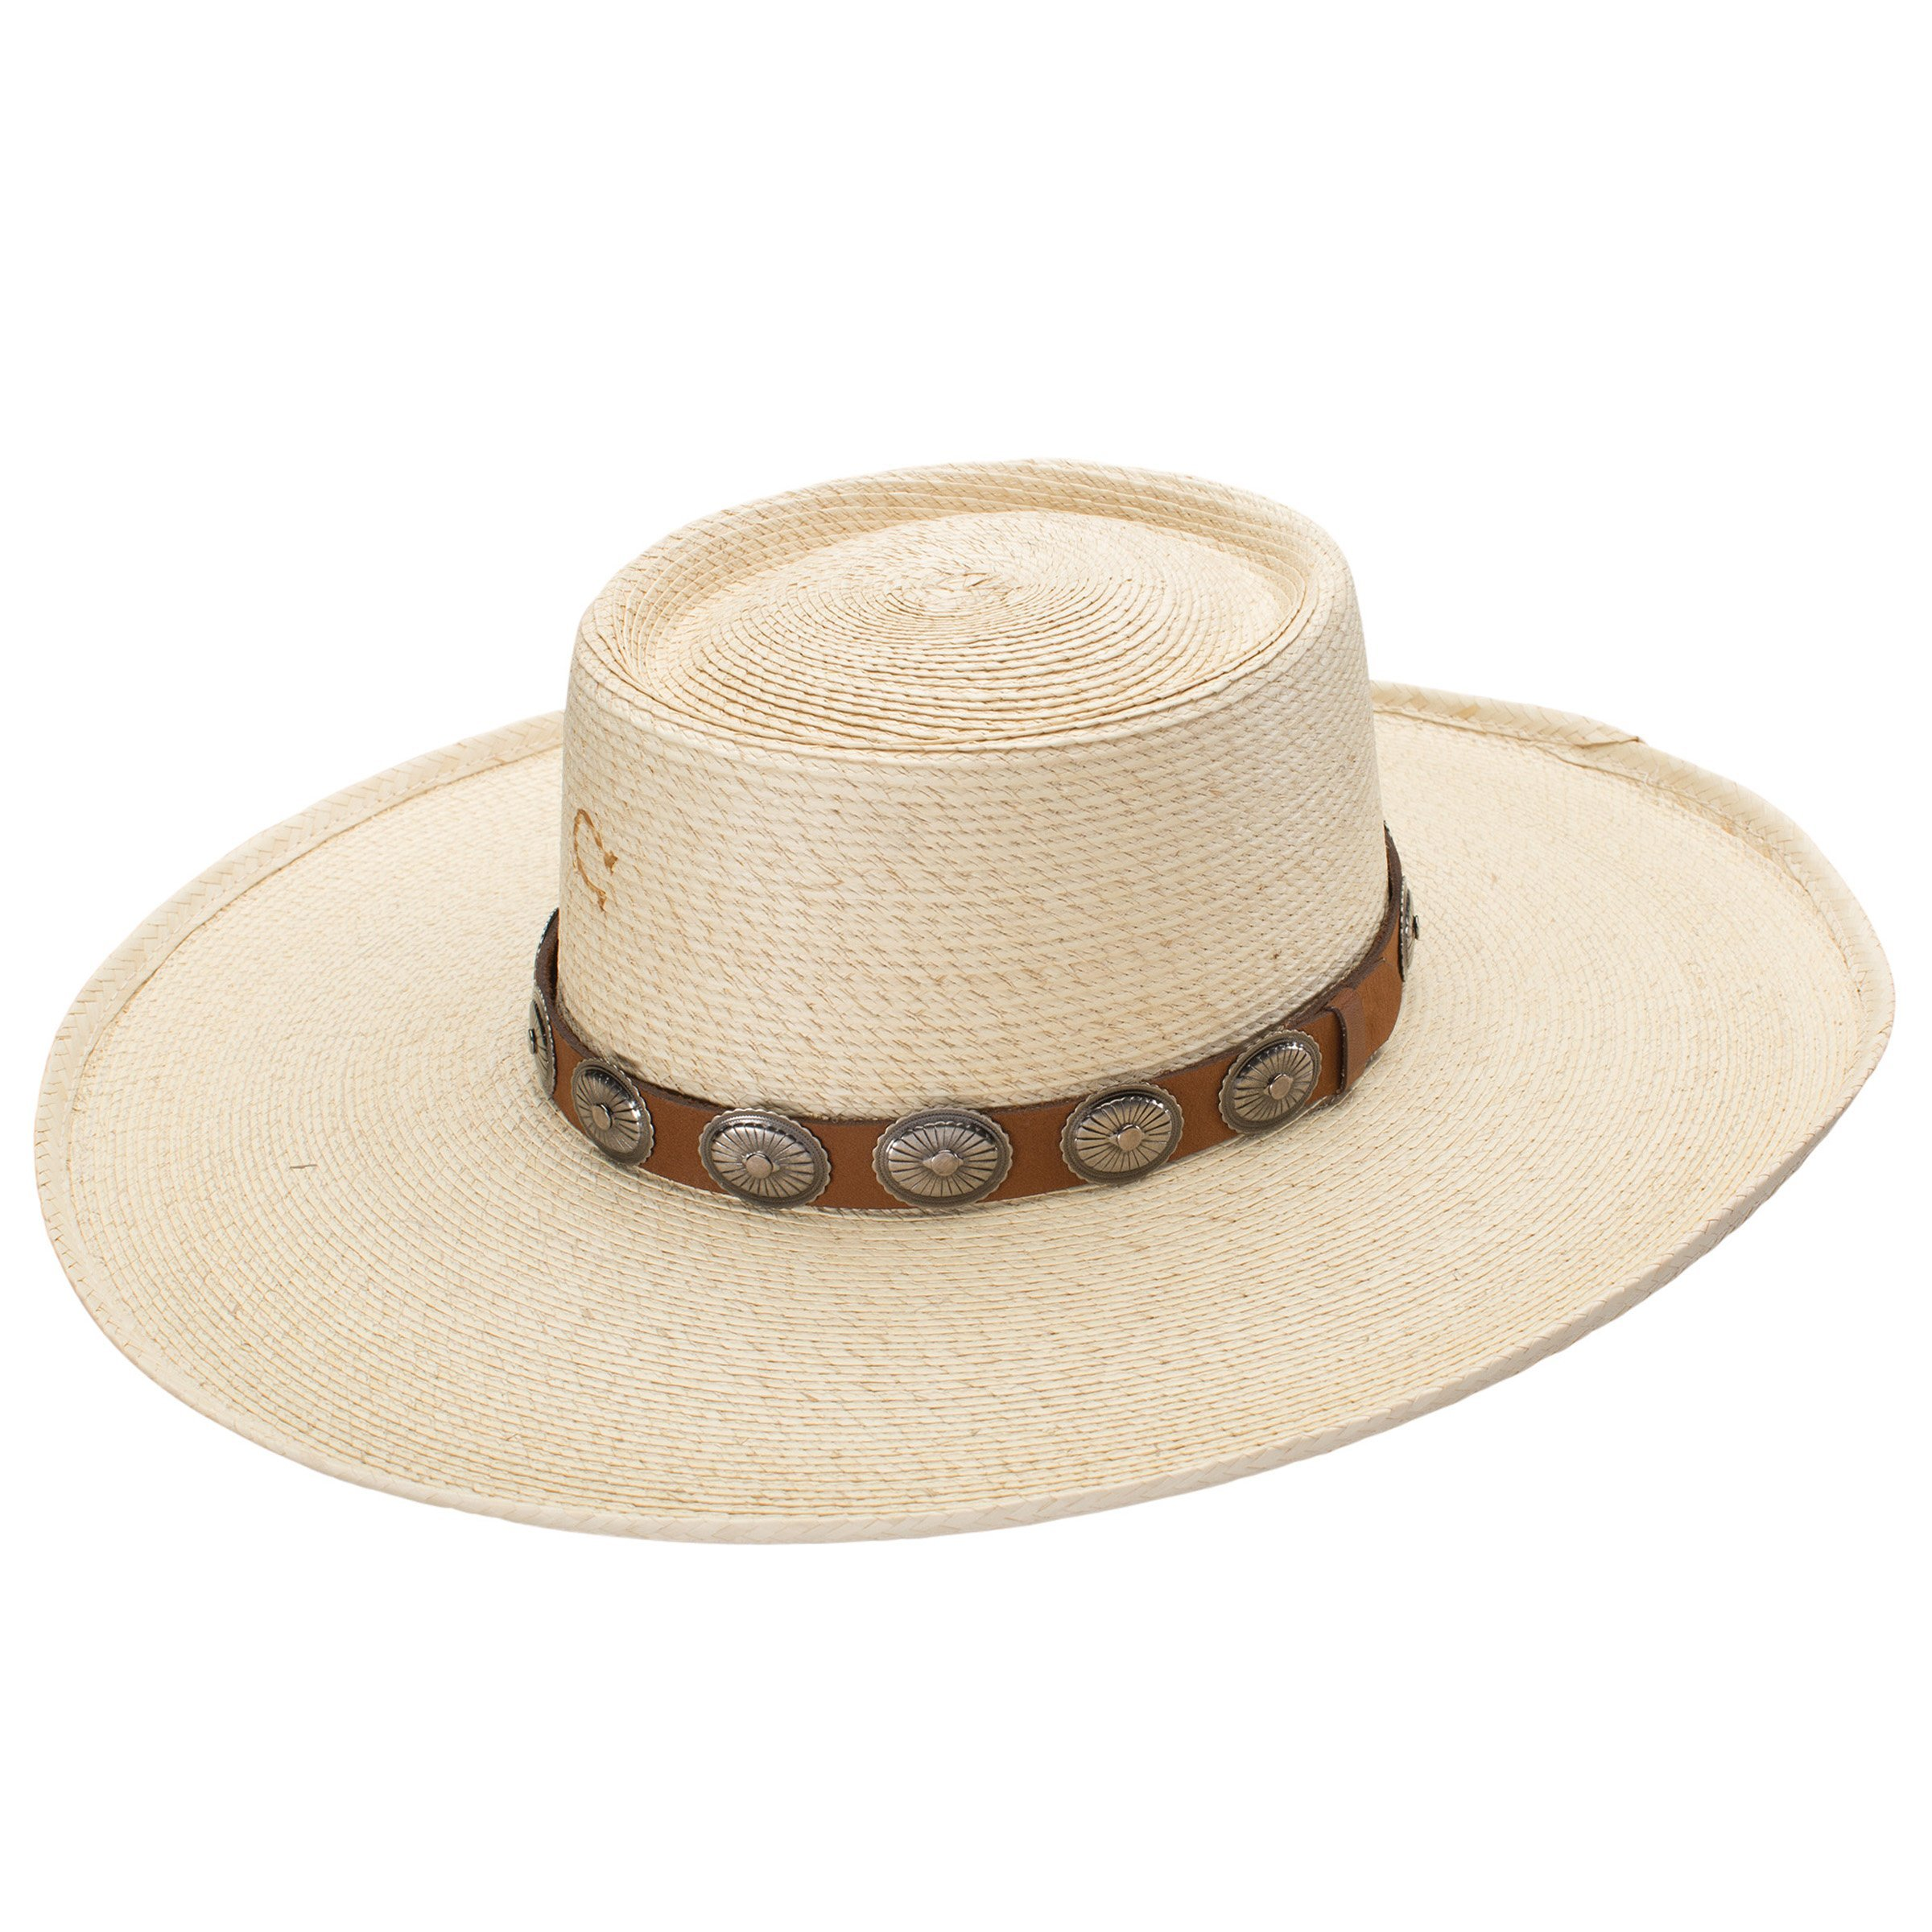 Charlie 1 Horse Women's High Desert Straw Hat Item CSHIDS-2550